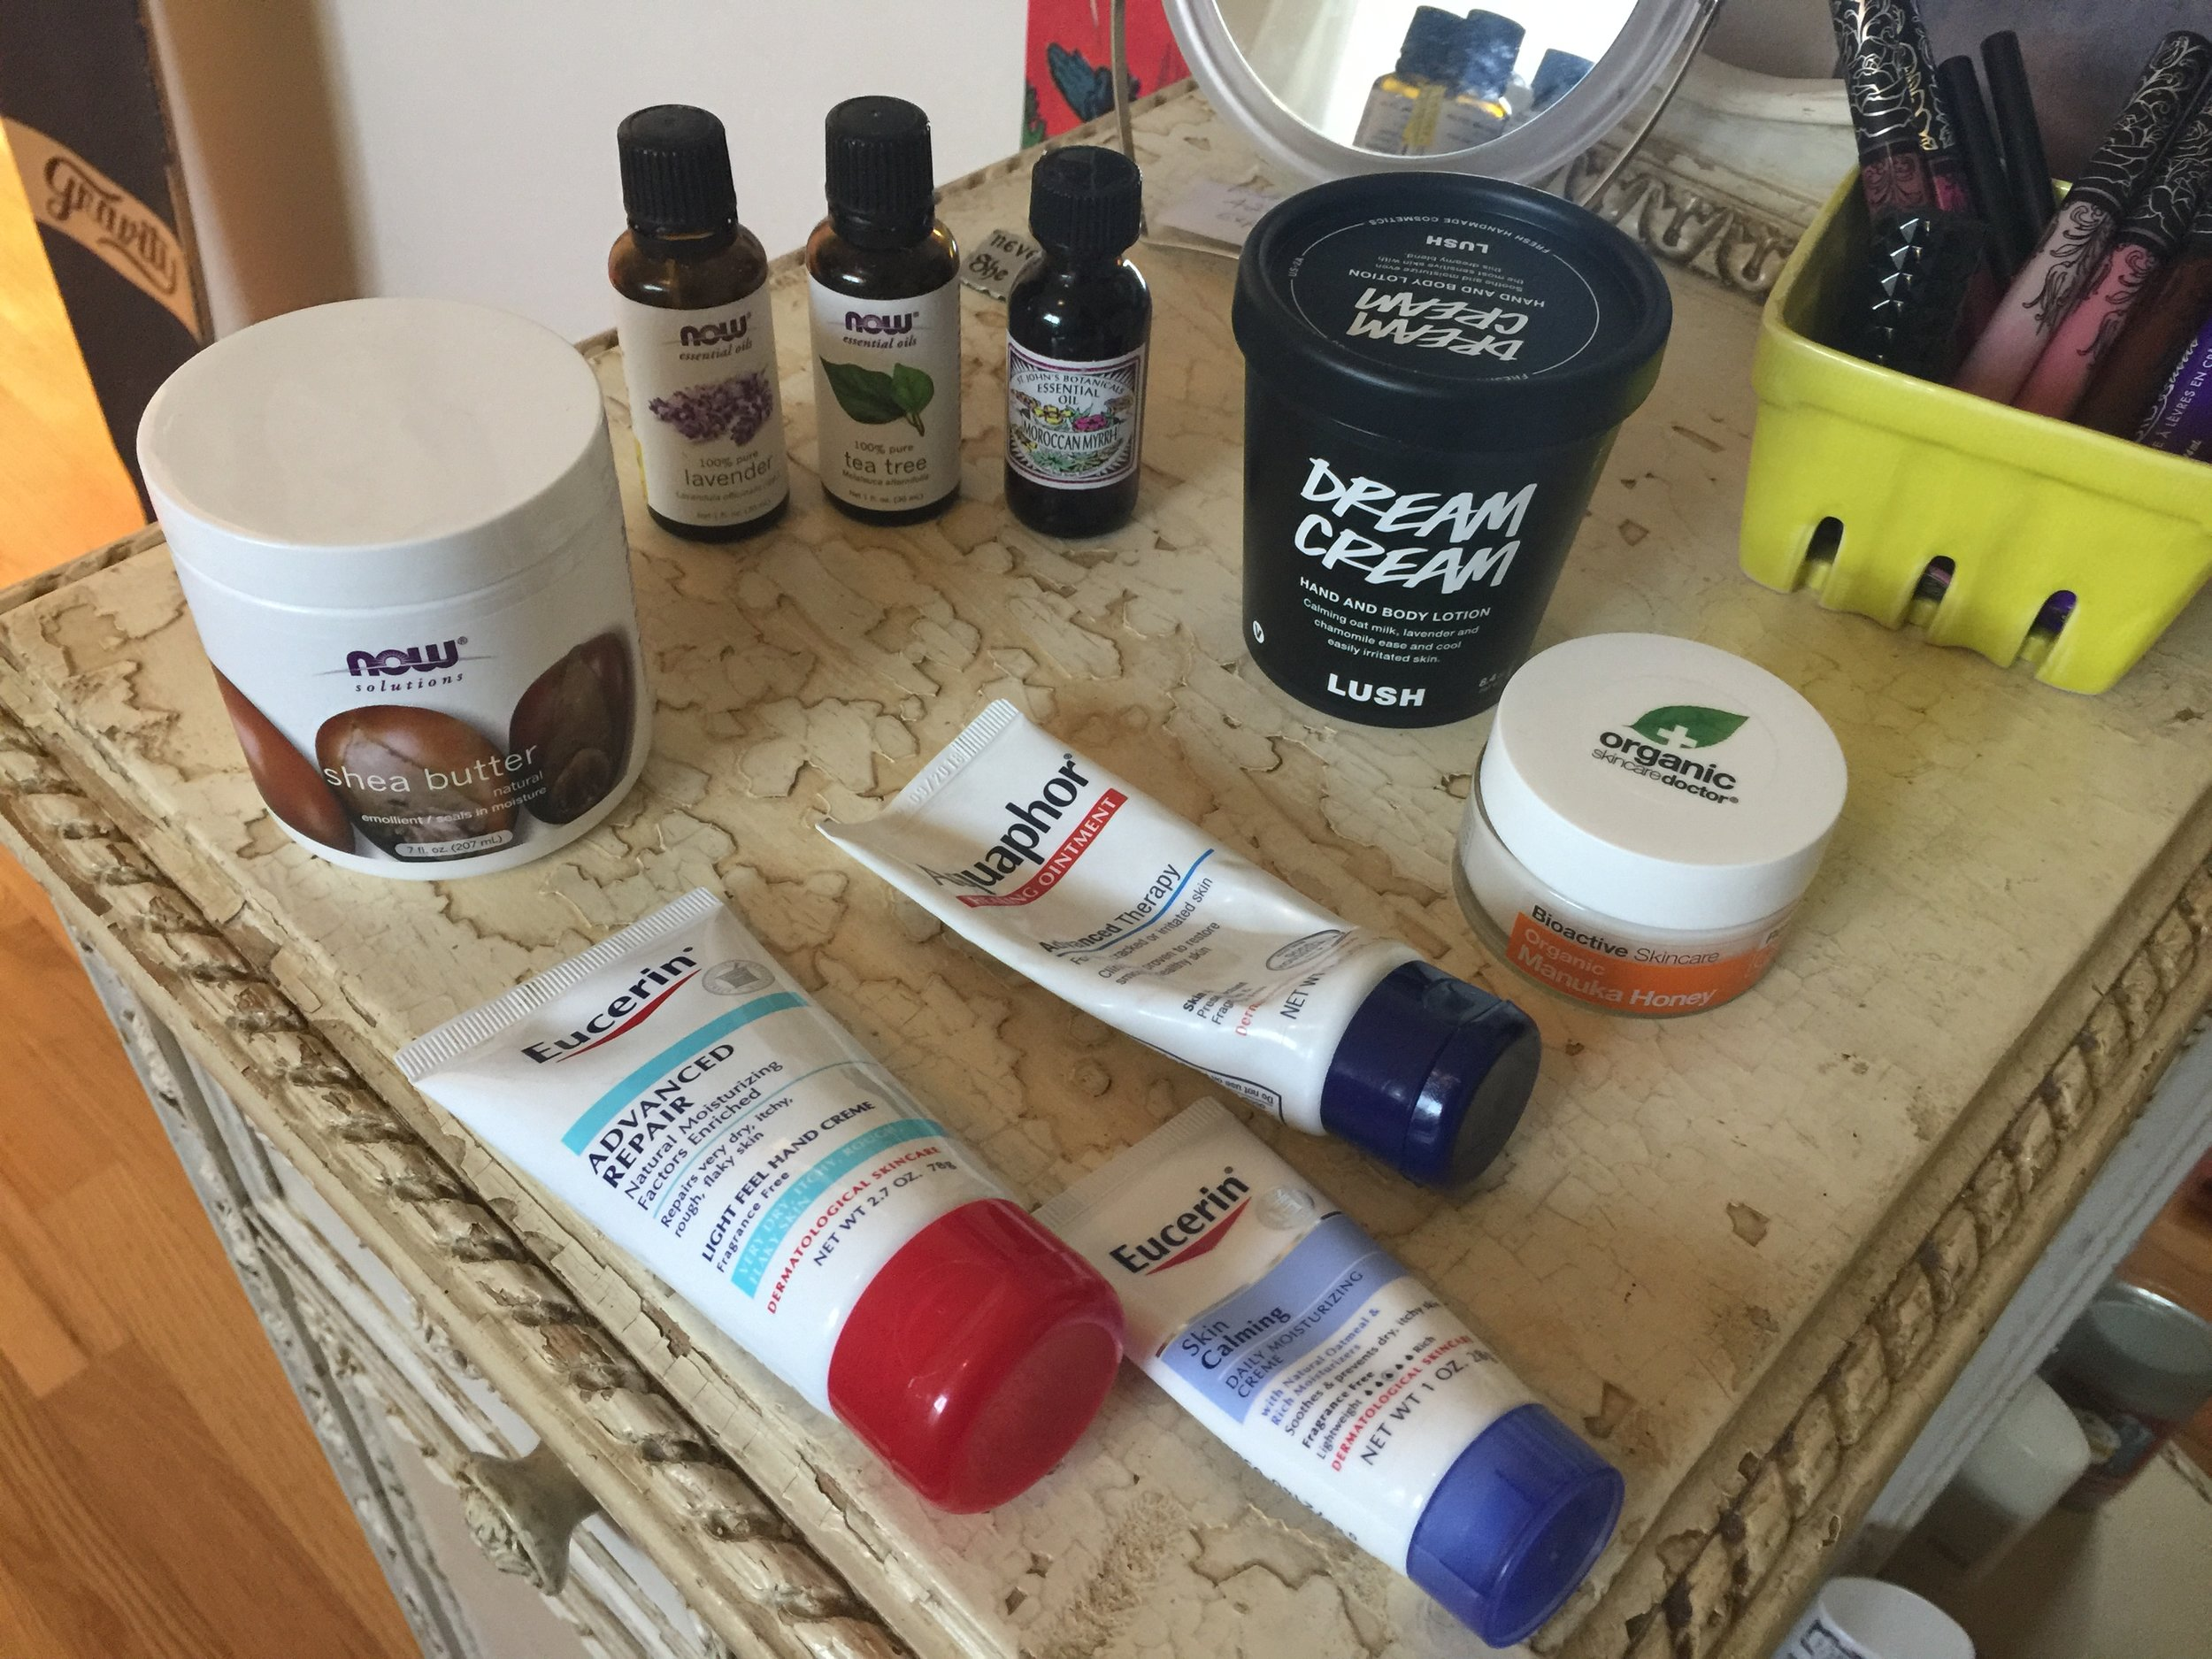 All of the topical products I was using.